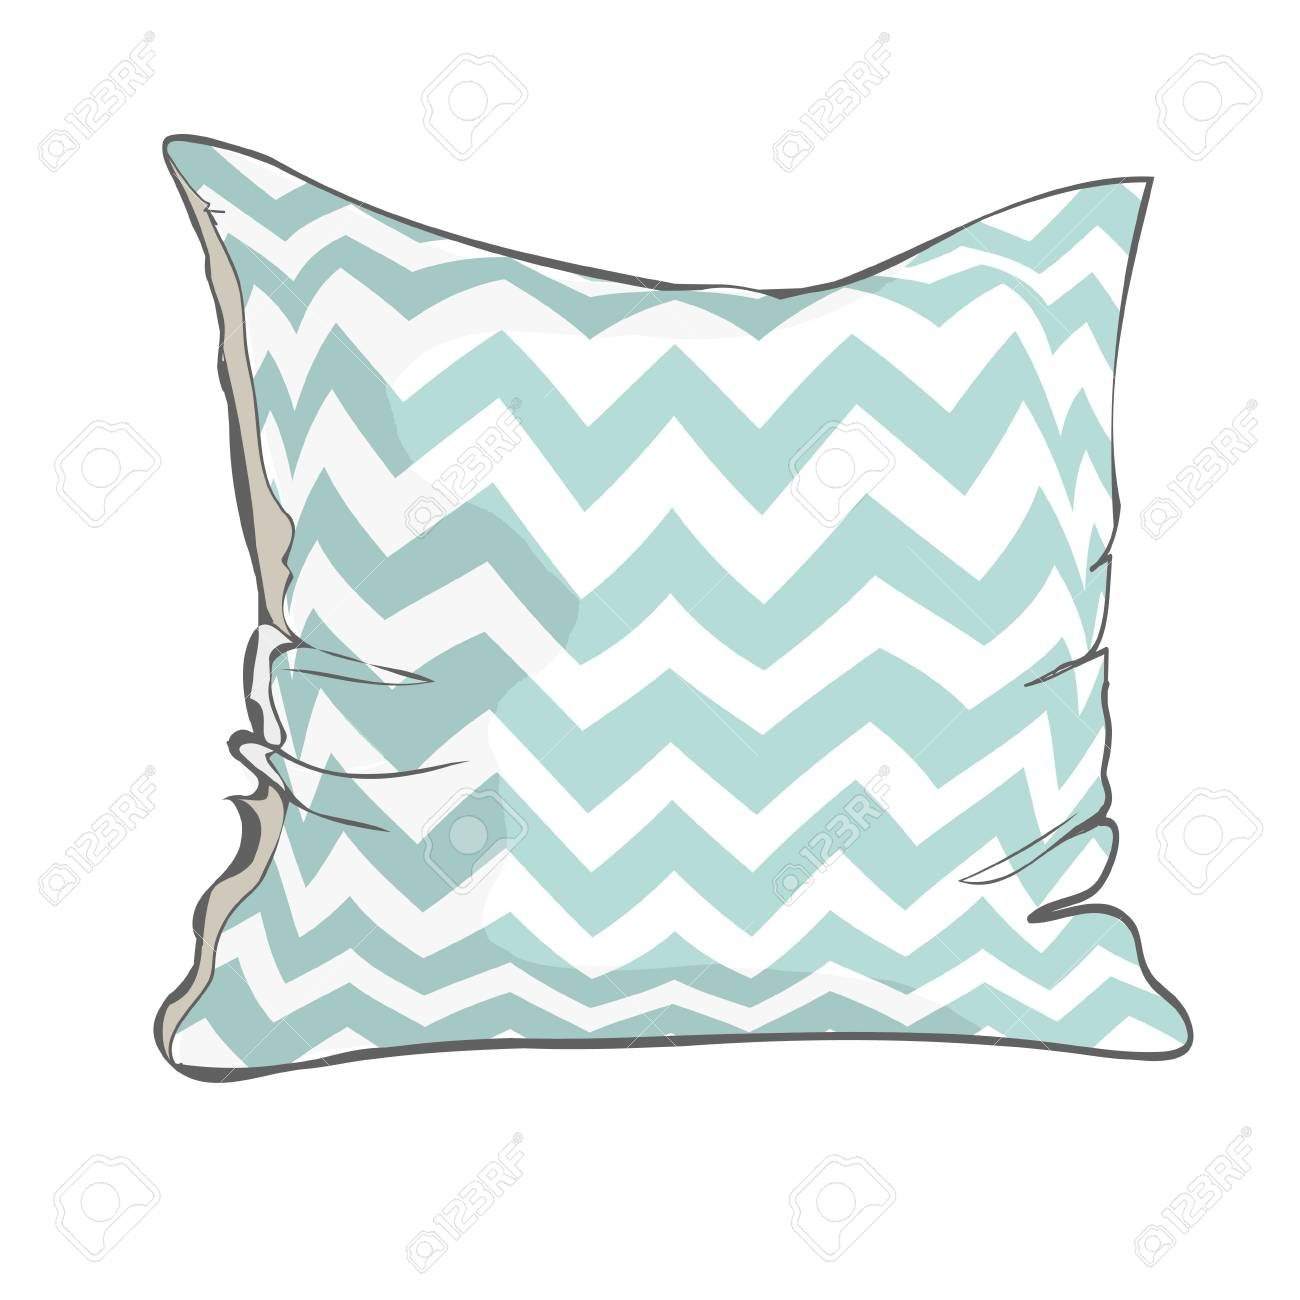 sketch vector illustration of pillow with white and blue geometric pattern. - 98615223